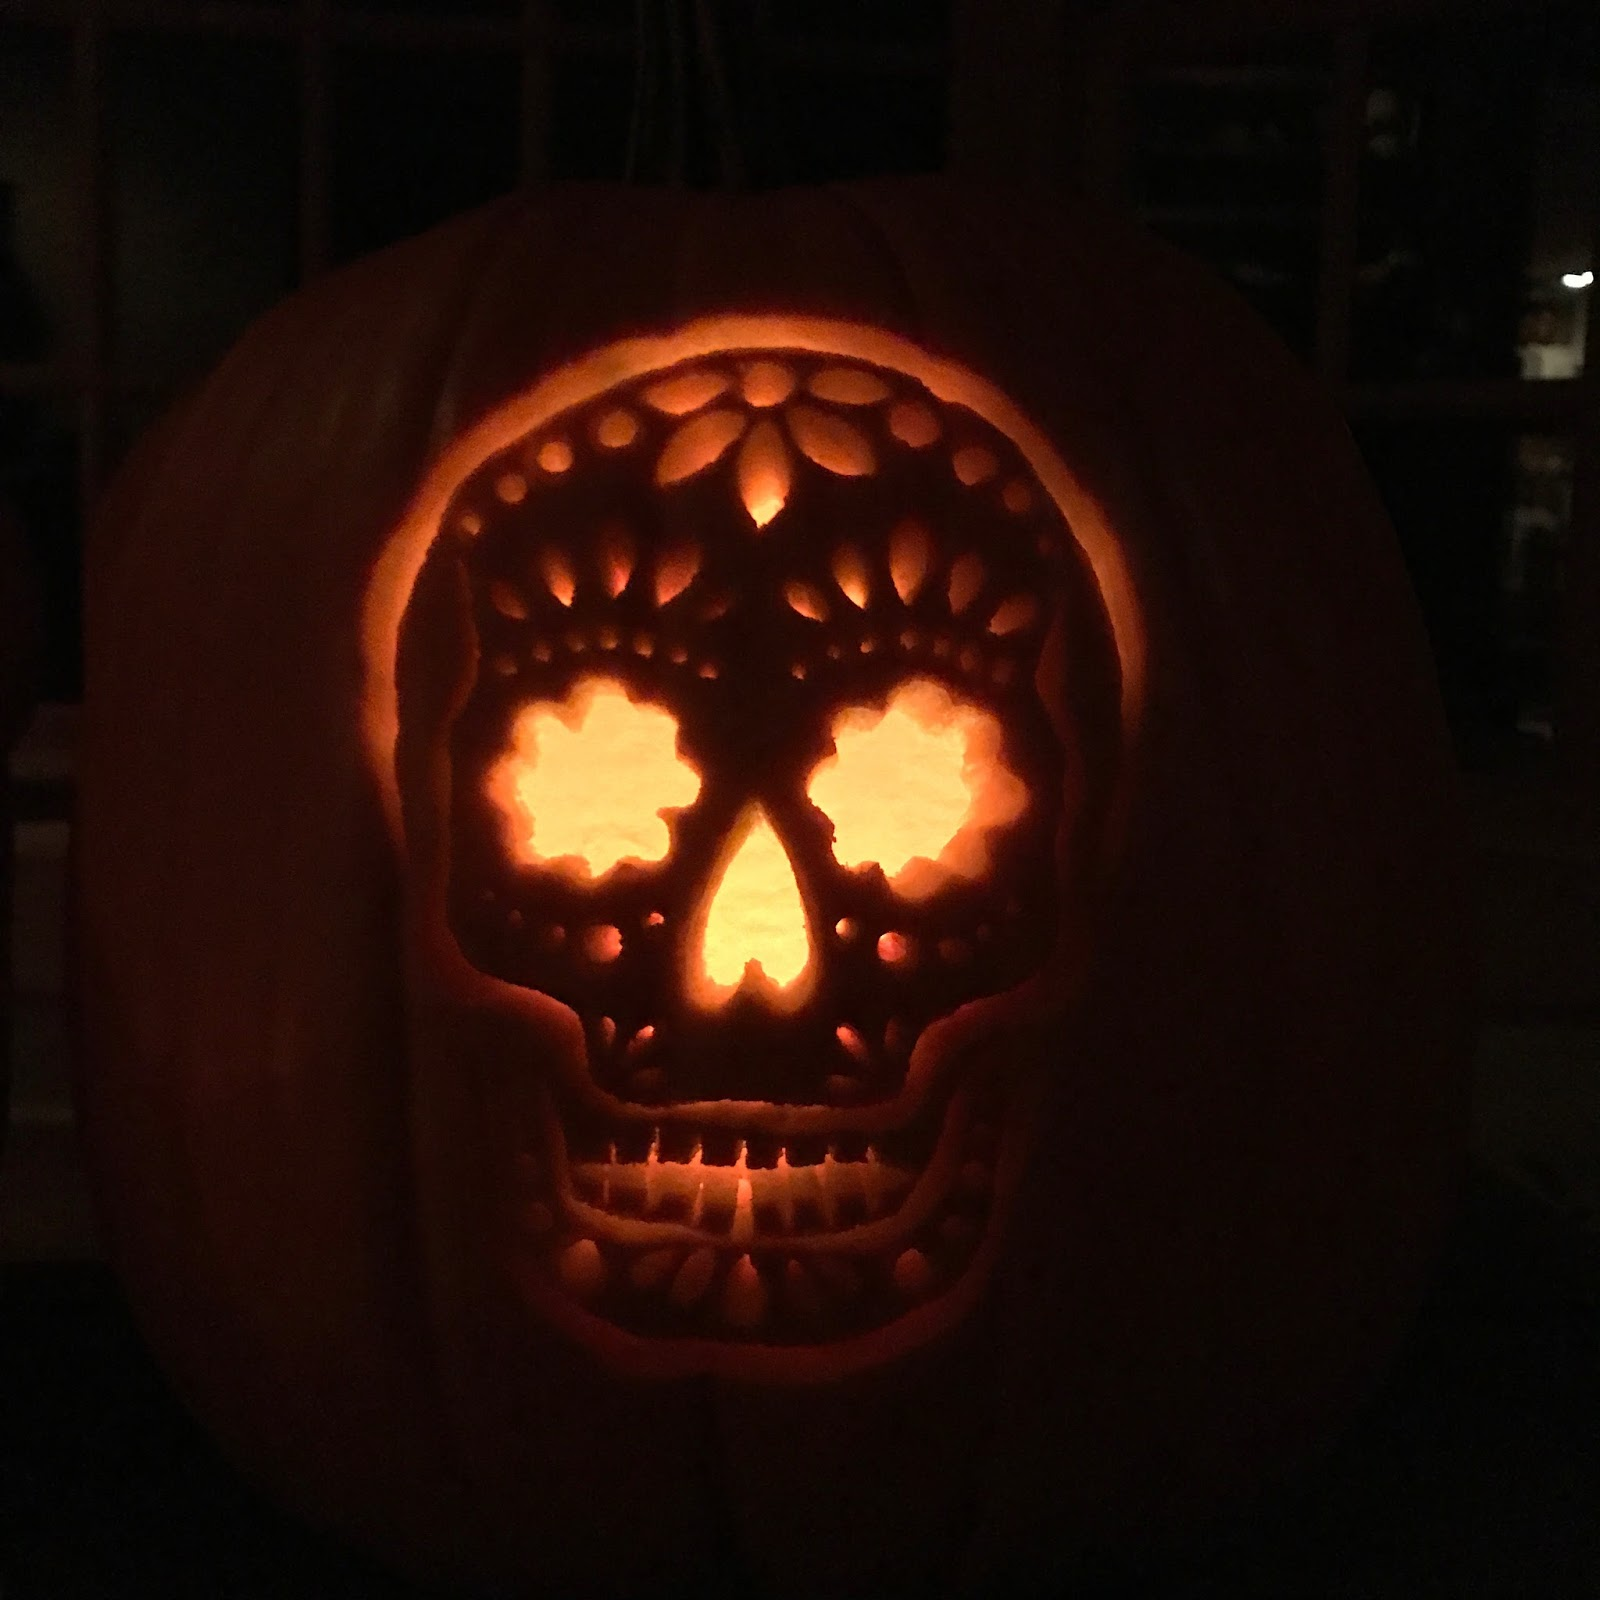 disney pixar coco pumpkin carving